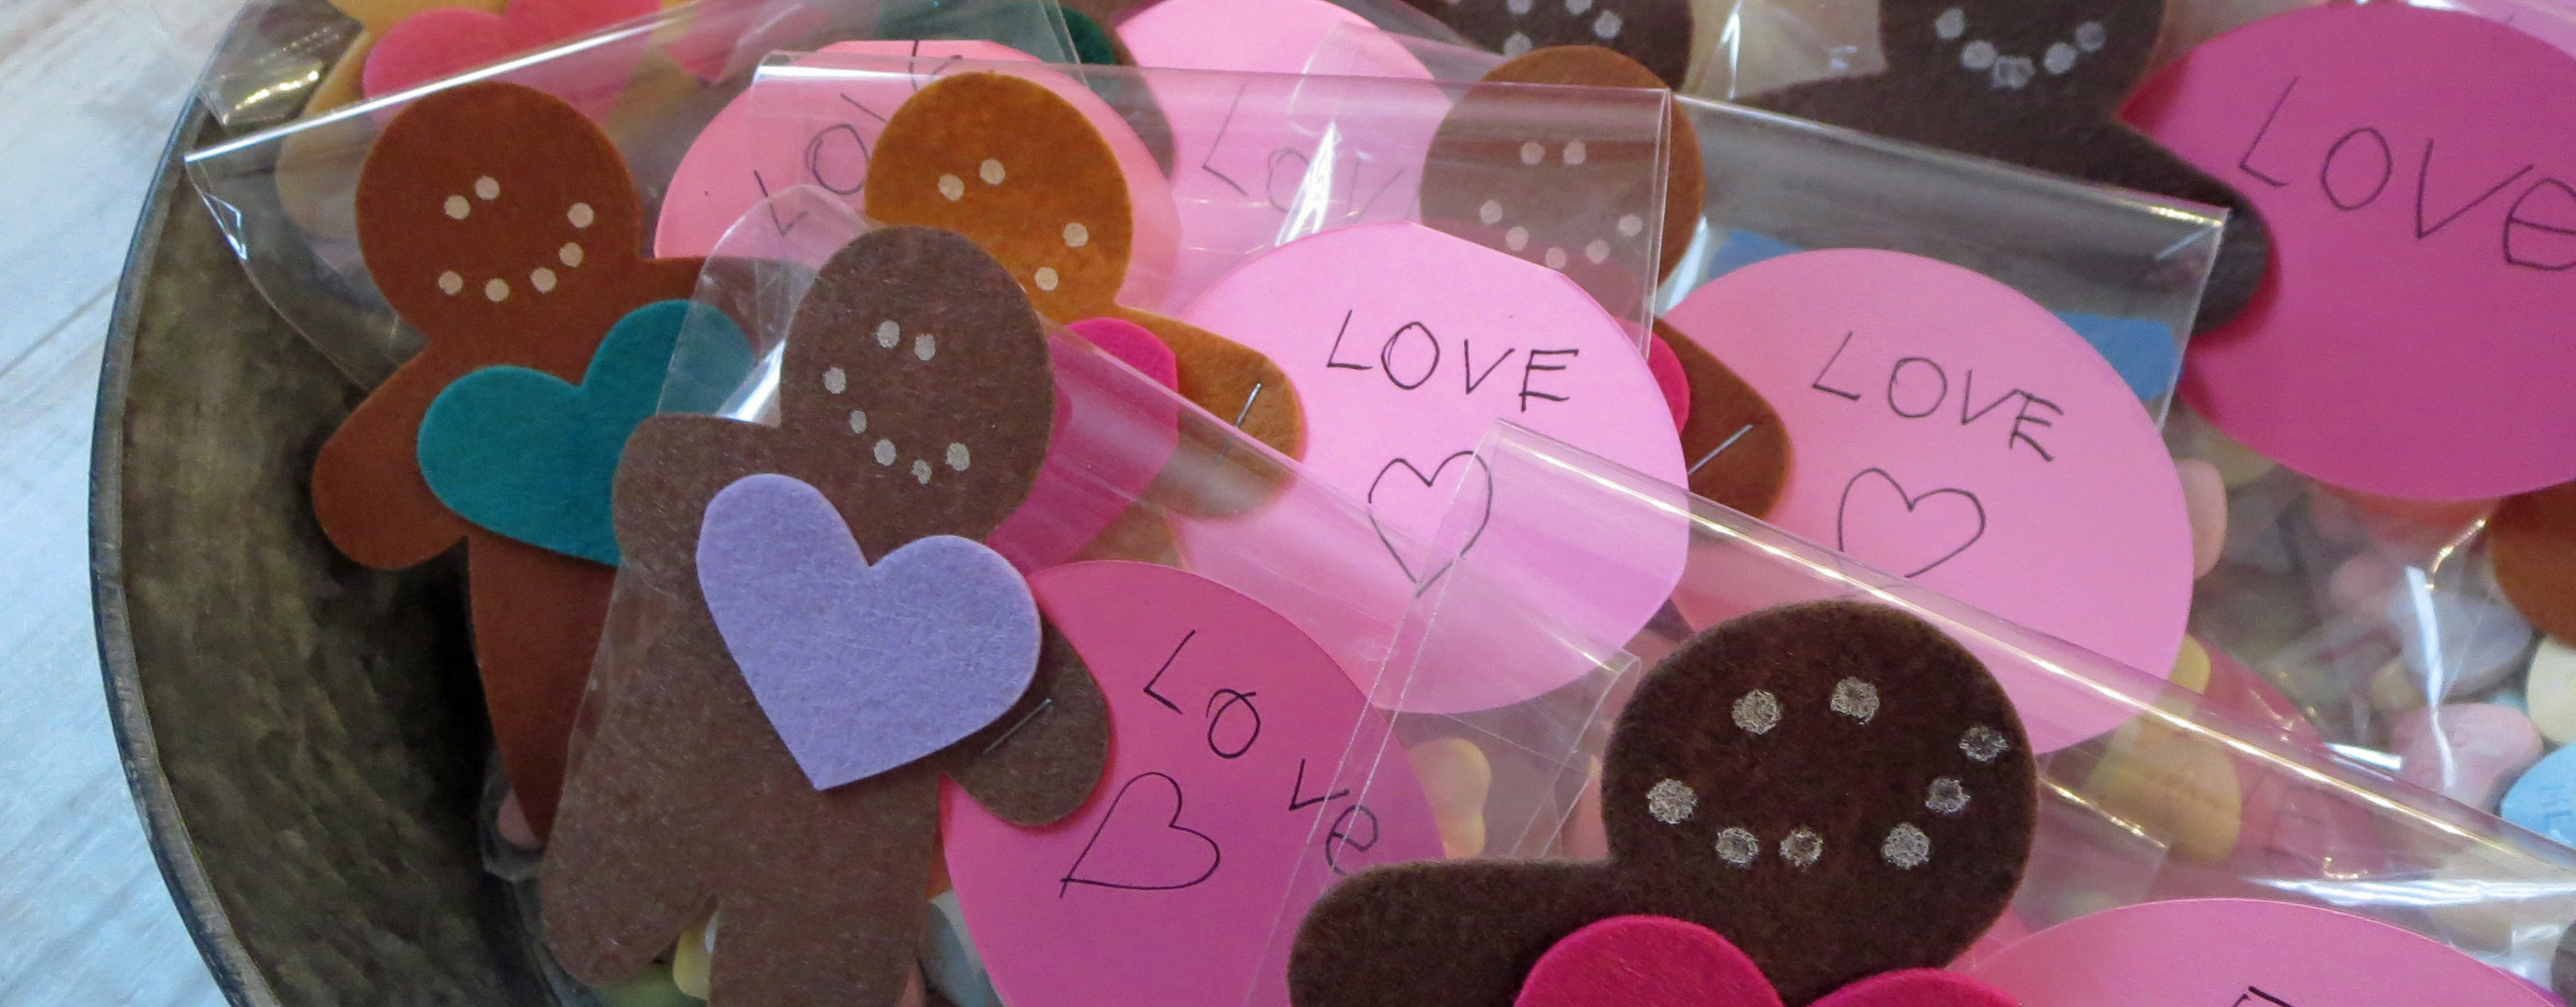 collection of felt gingerbread cookie shapes with felt hearts attached to bags of sweetheart candy